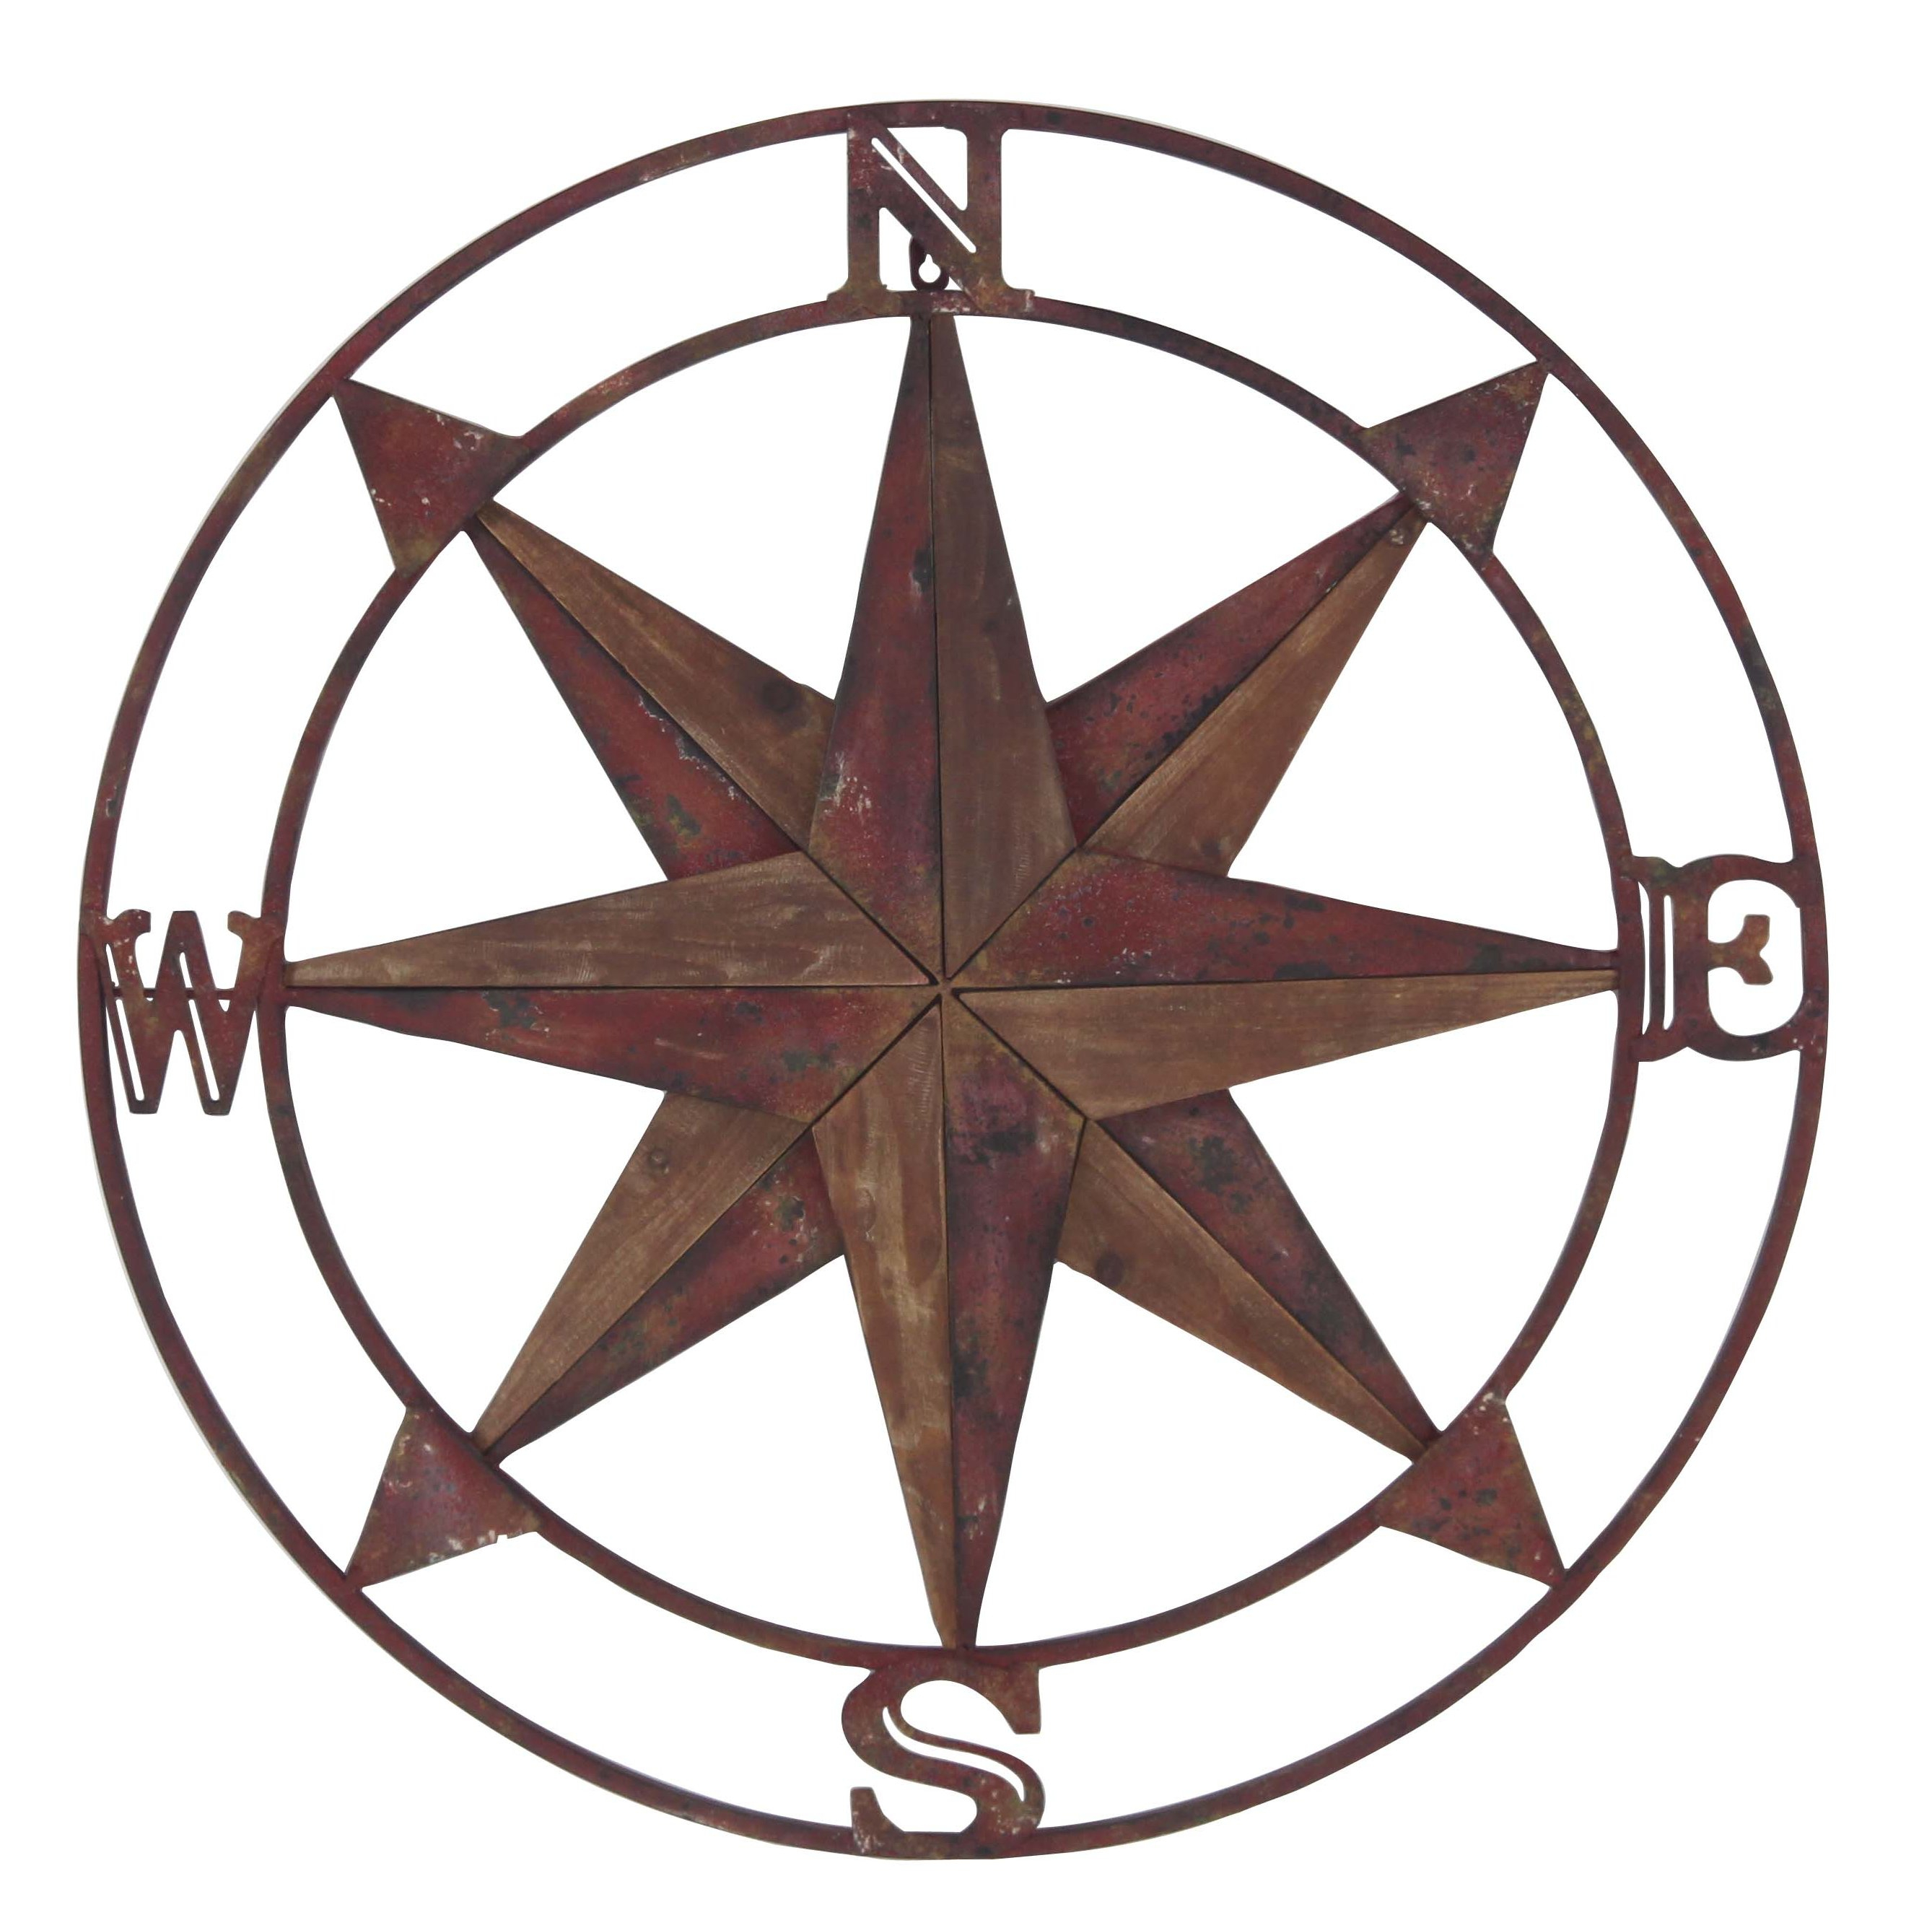 Large Compass Wall Decor | Wayfair for Round Compass Wall Decor (Image 17 of 30)